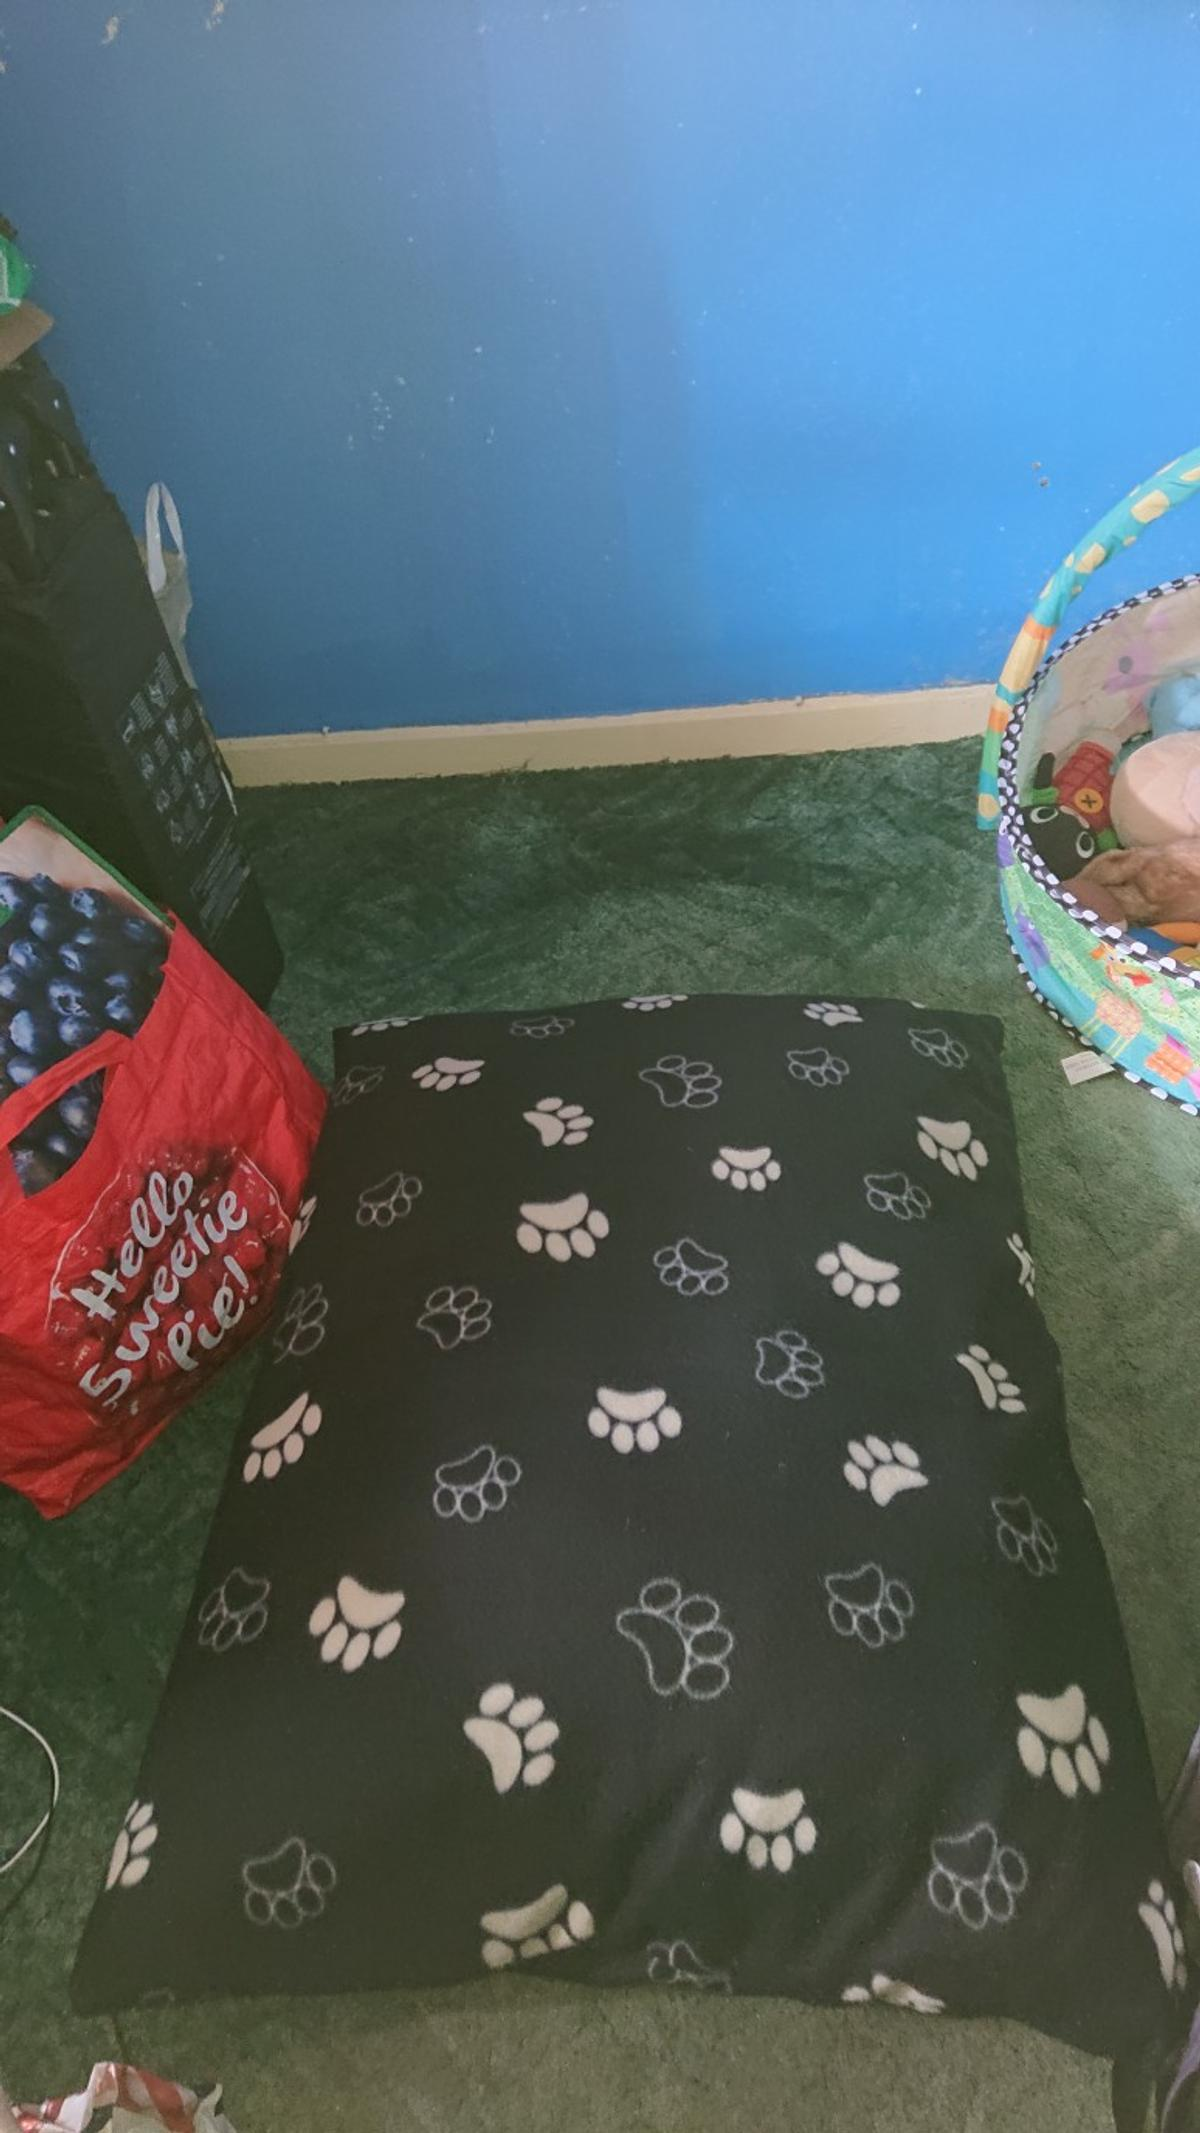 Brand New Medium sized dog bed.  Never been used, or touched.  Selling due to not having a dog in the end unfortunately.  Can be sold on its own or with a small bundle of dog things (see other things I'm selling to see them)